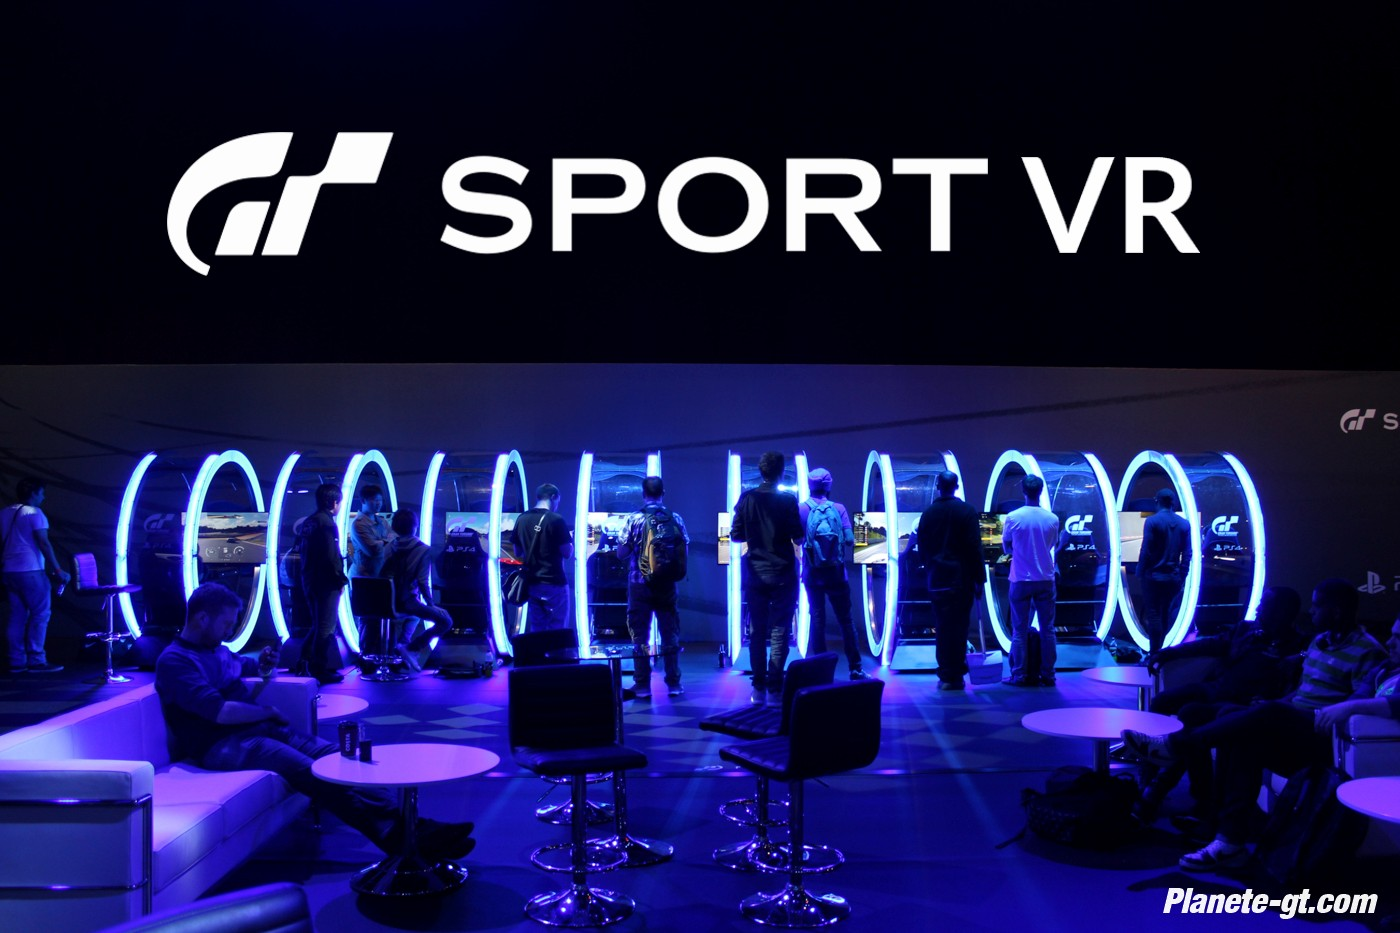 gran-turismo-sport-vr-ps4-playstation